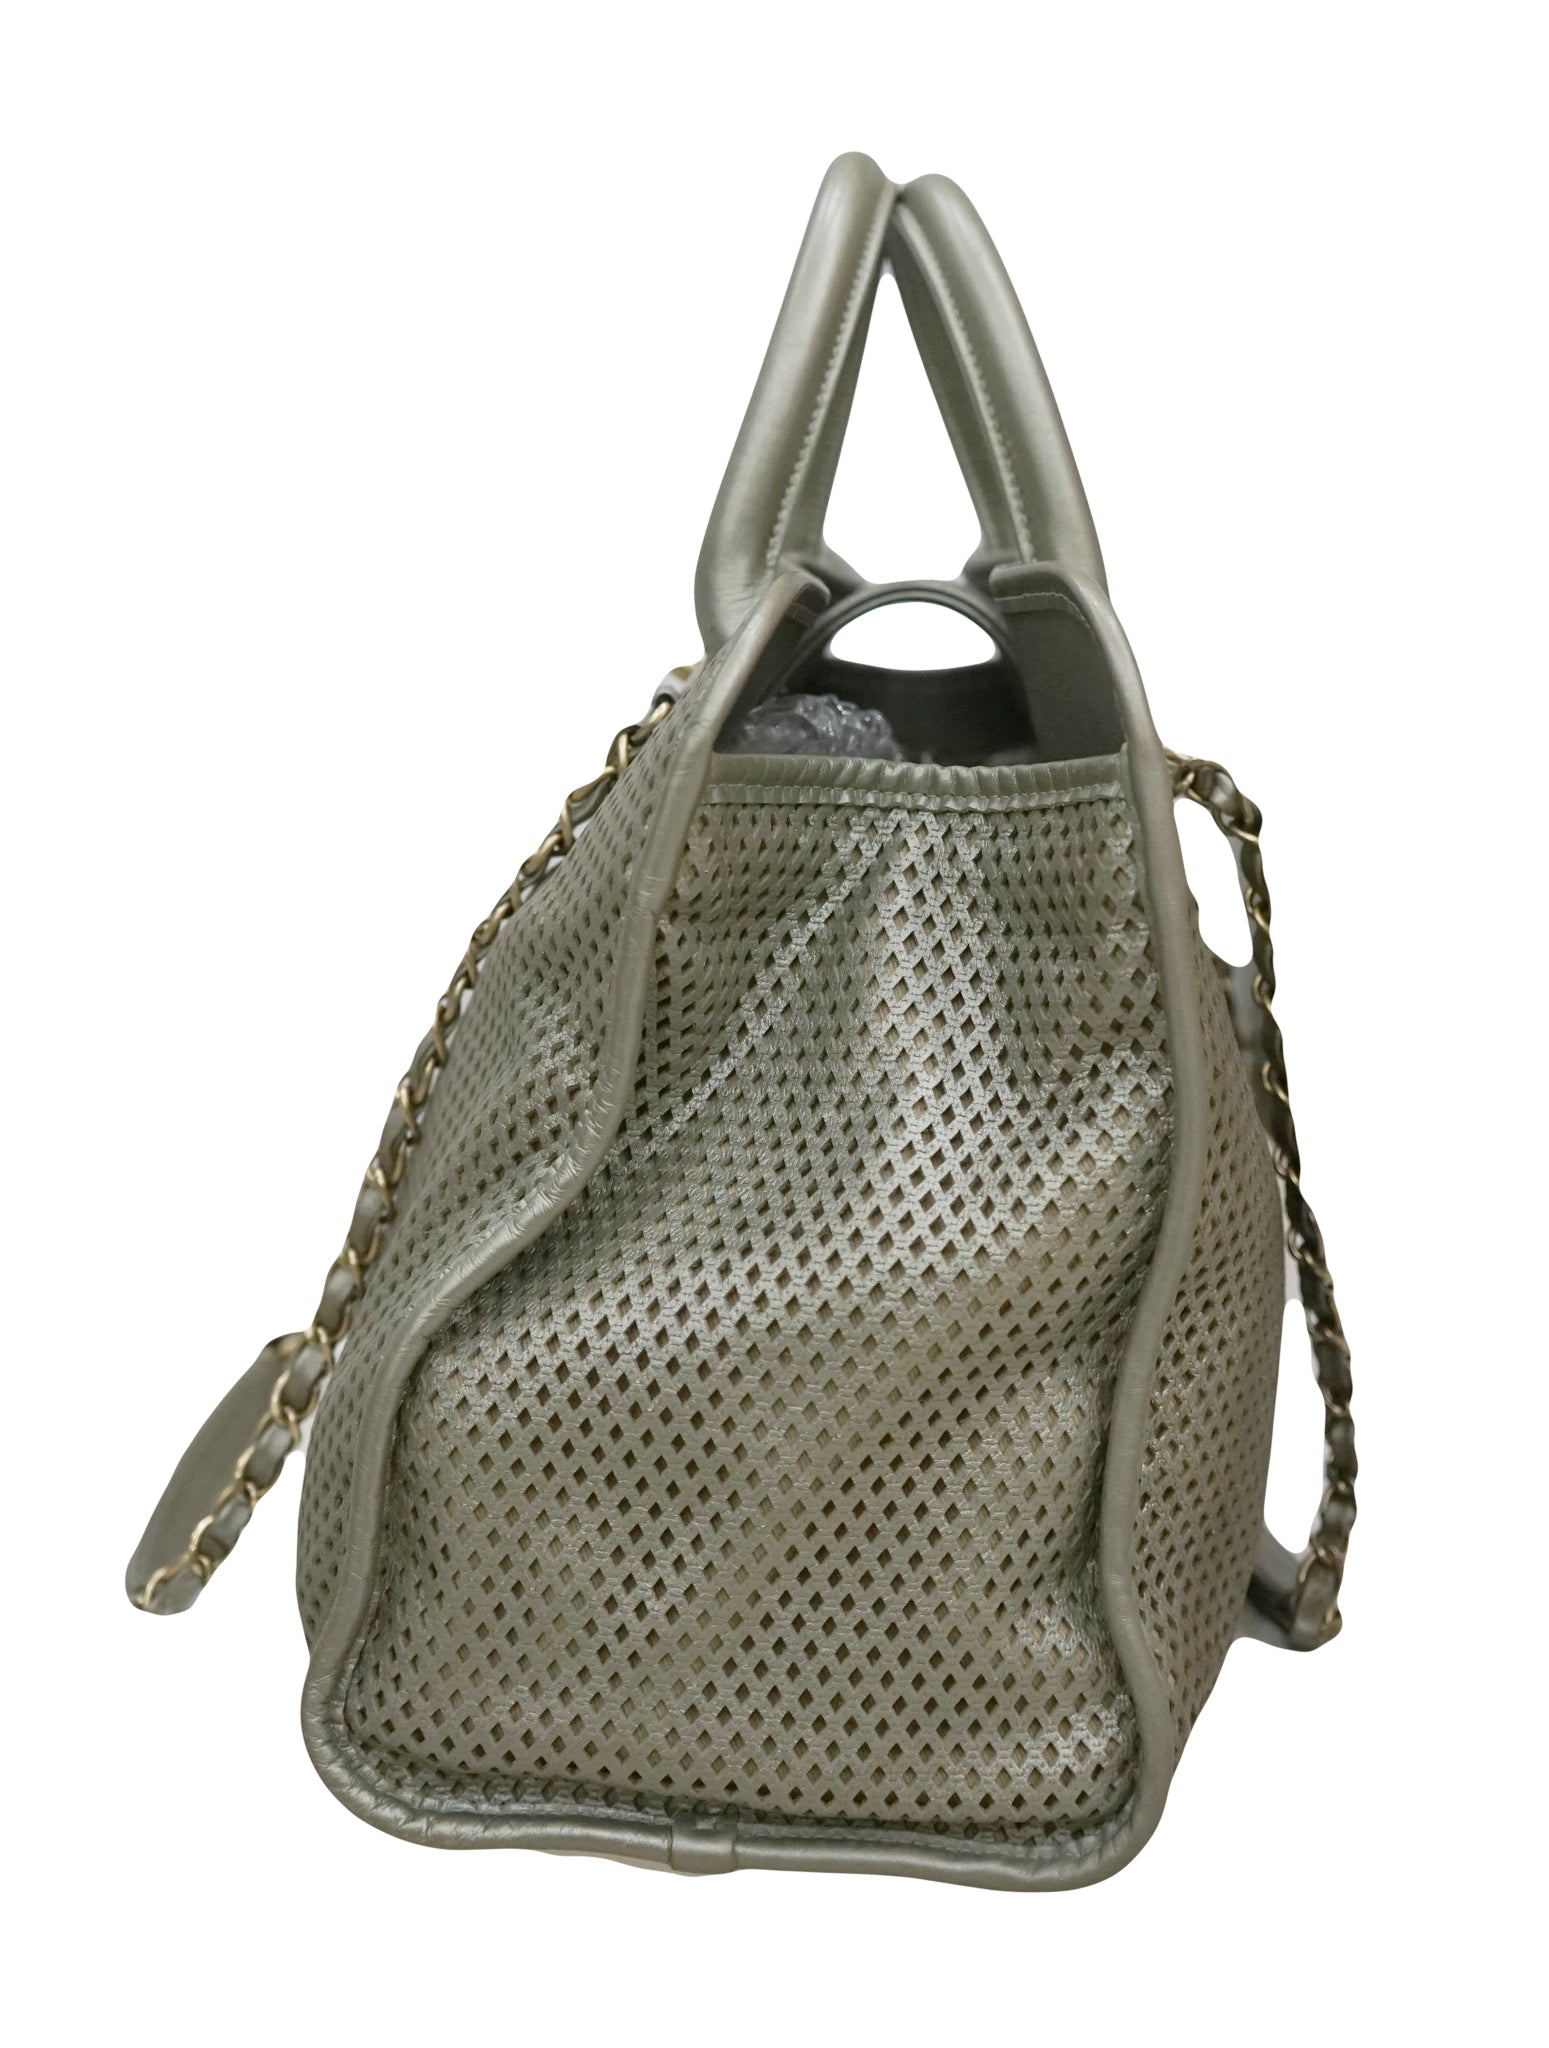 PERFORATED LEATHER UP IN THE AIR TOTE